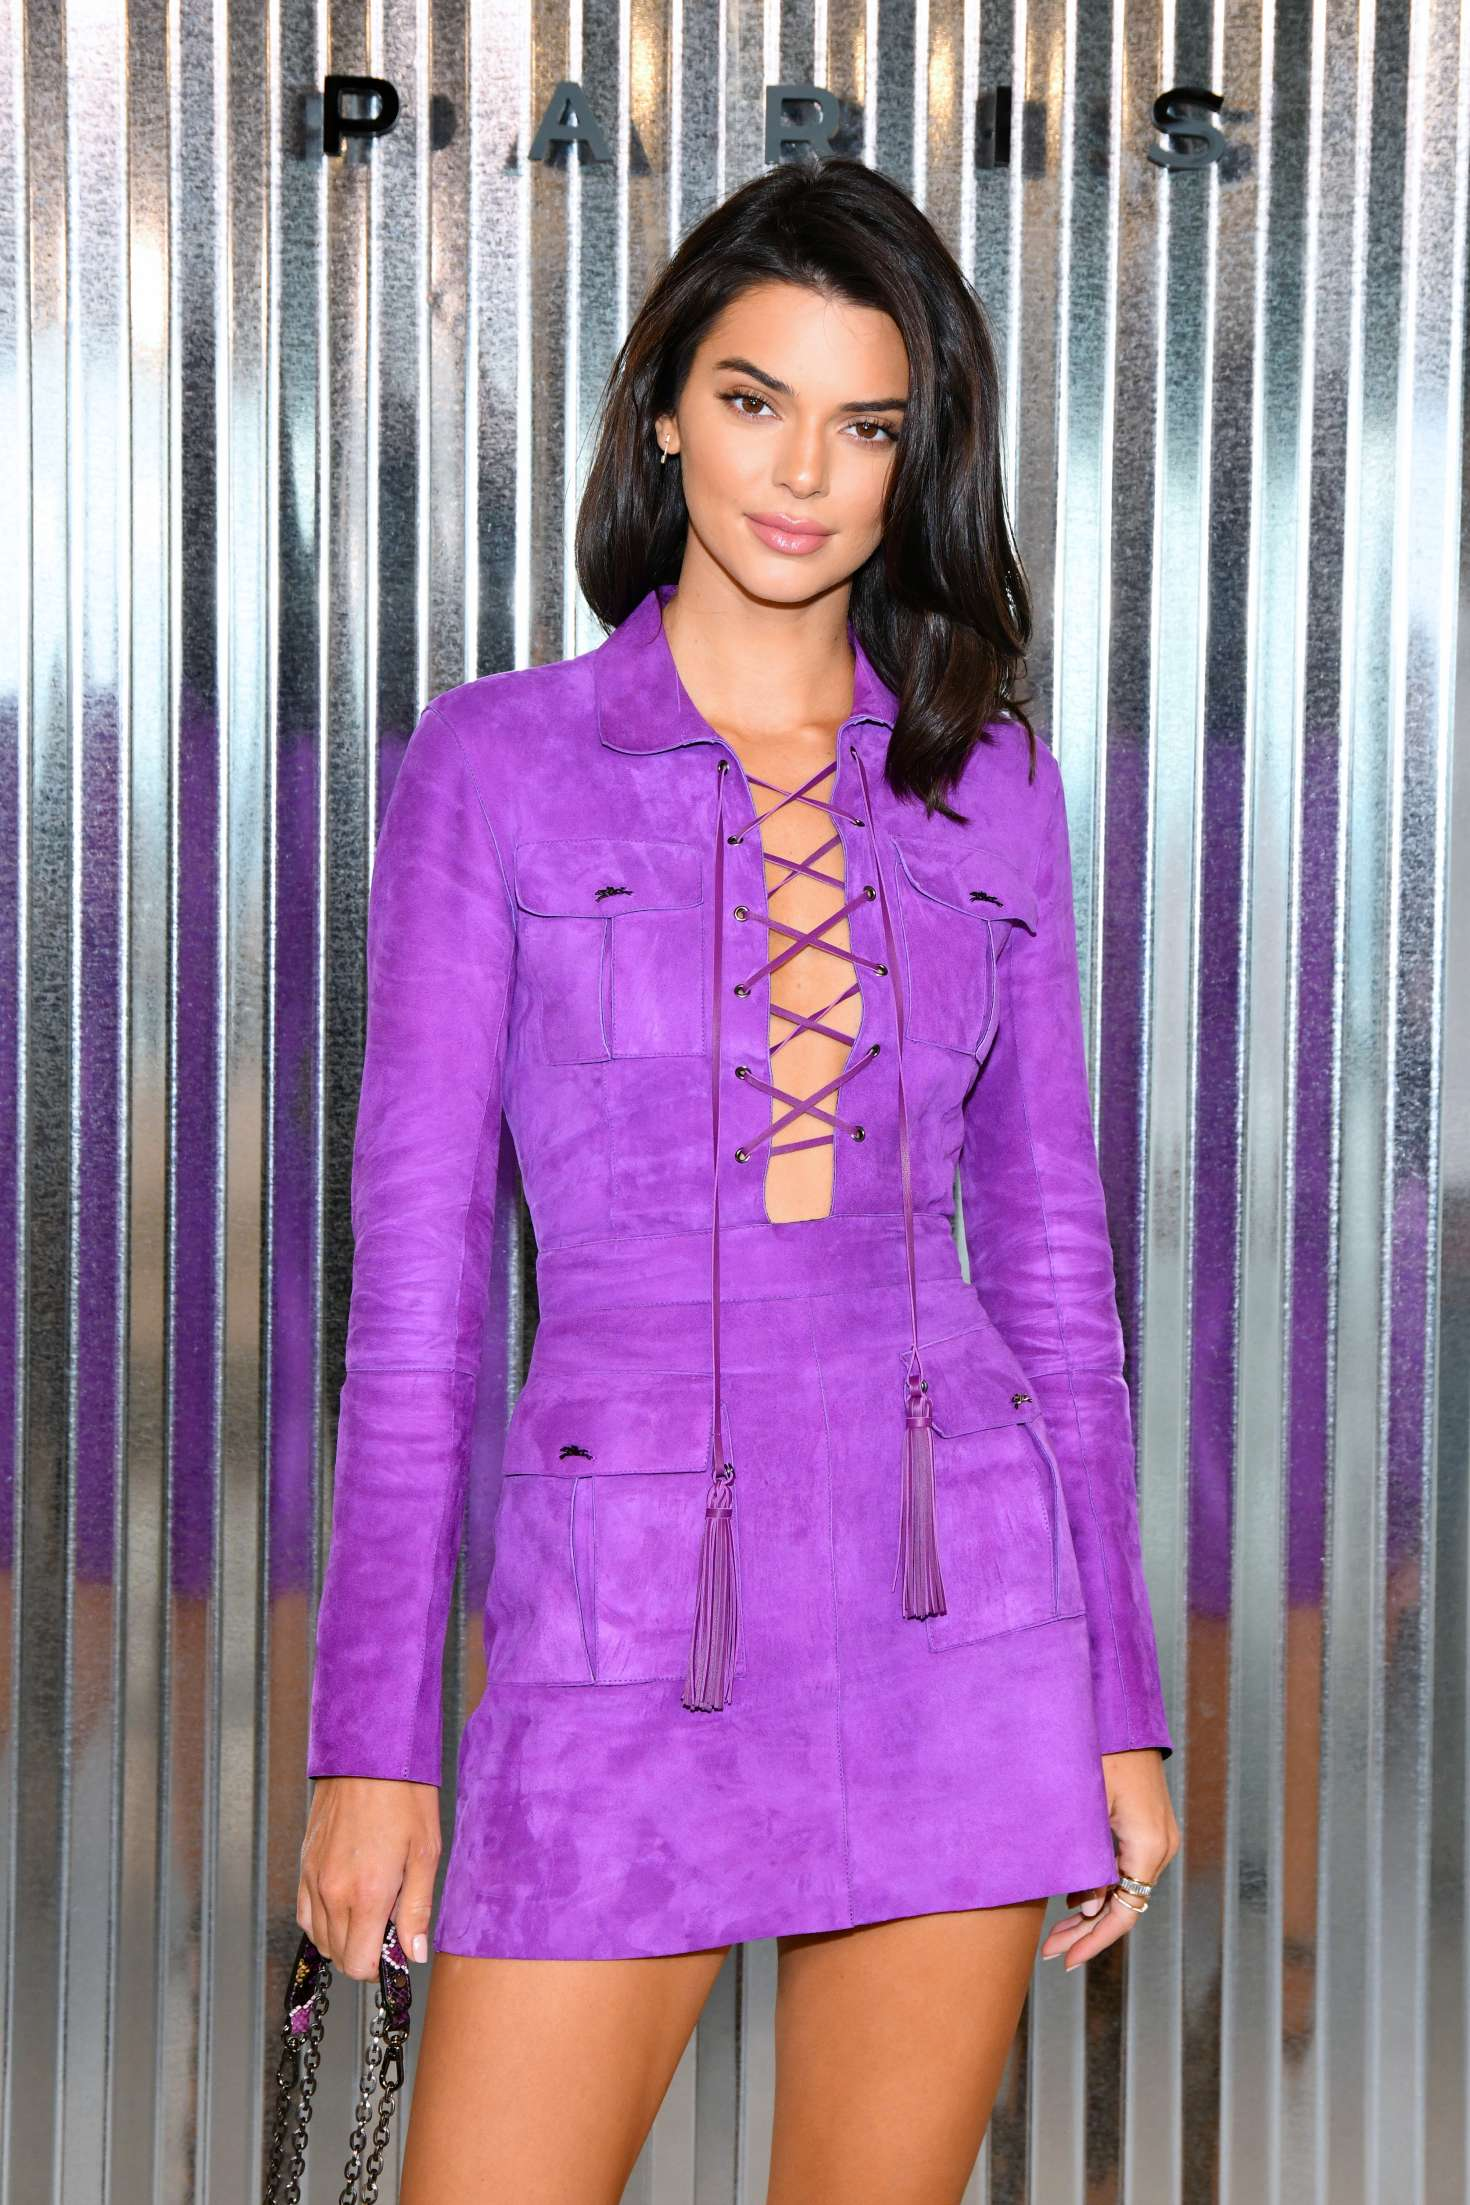 Kendall Jenner wearing a purple Long Champs dress with a suede material, full sleeves, shirt collar and cut out panel from neck down to the stomach which is tied through criss cross lace